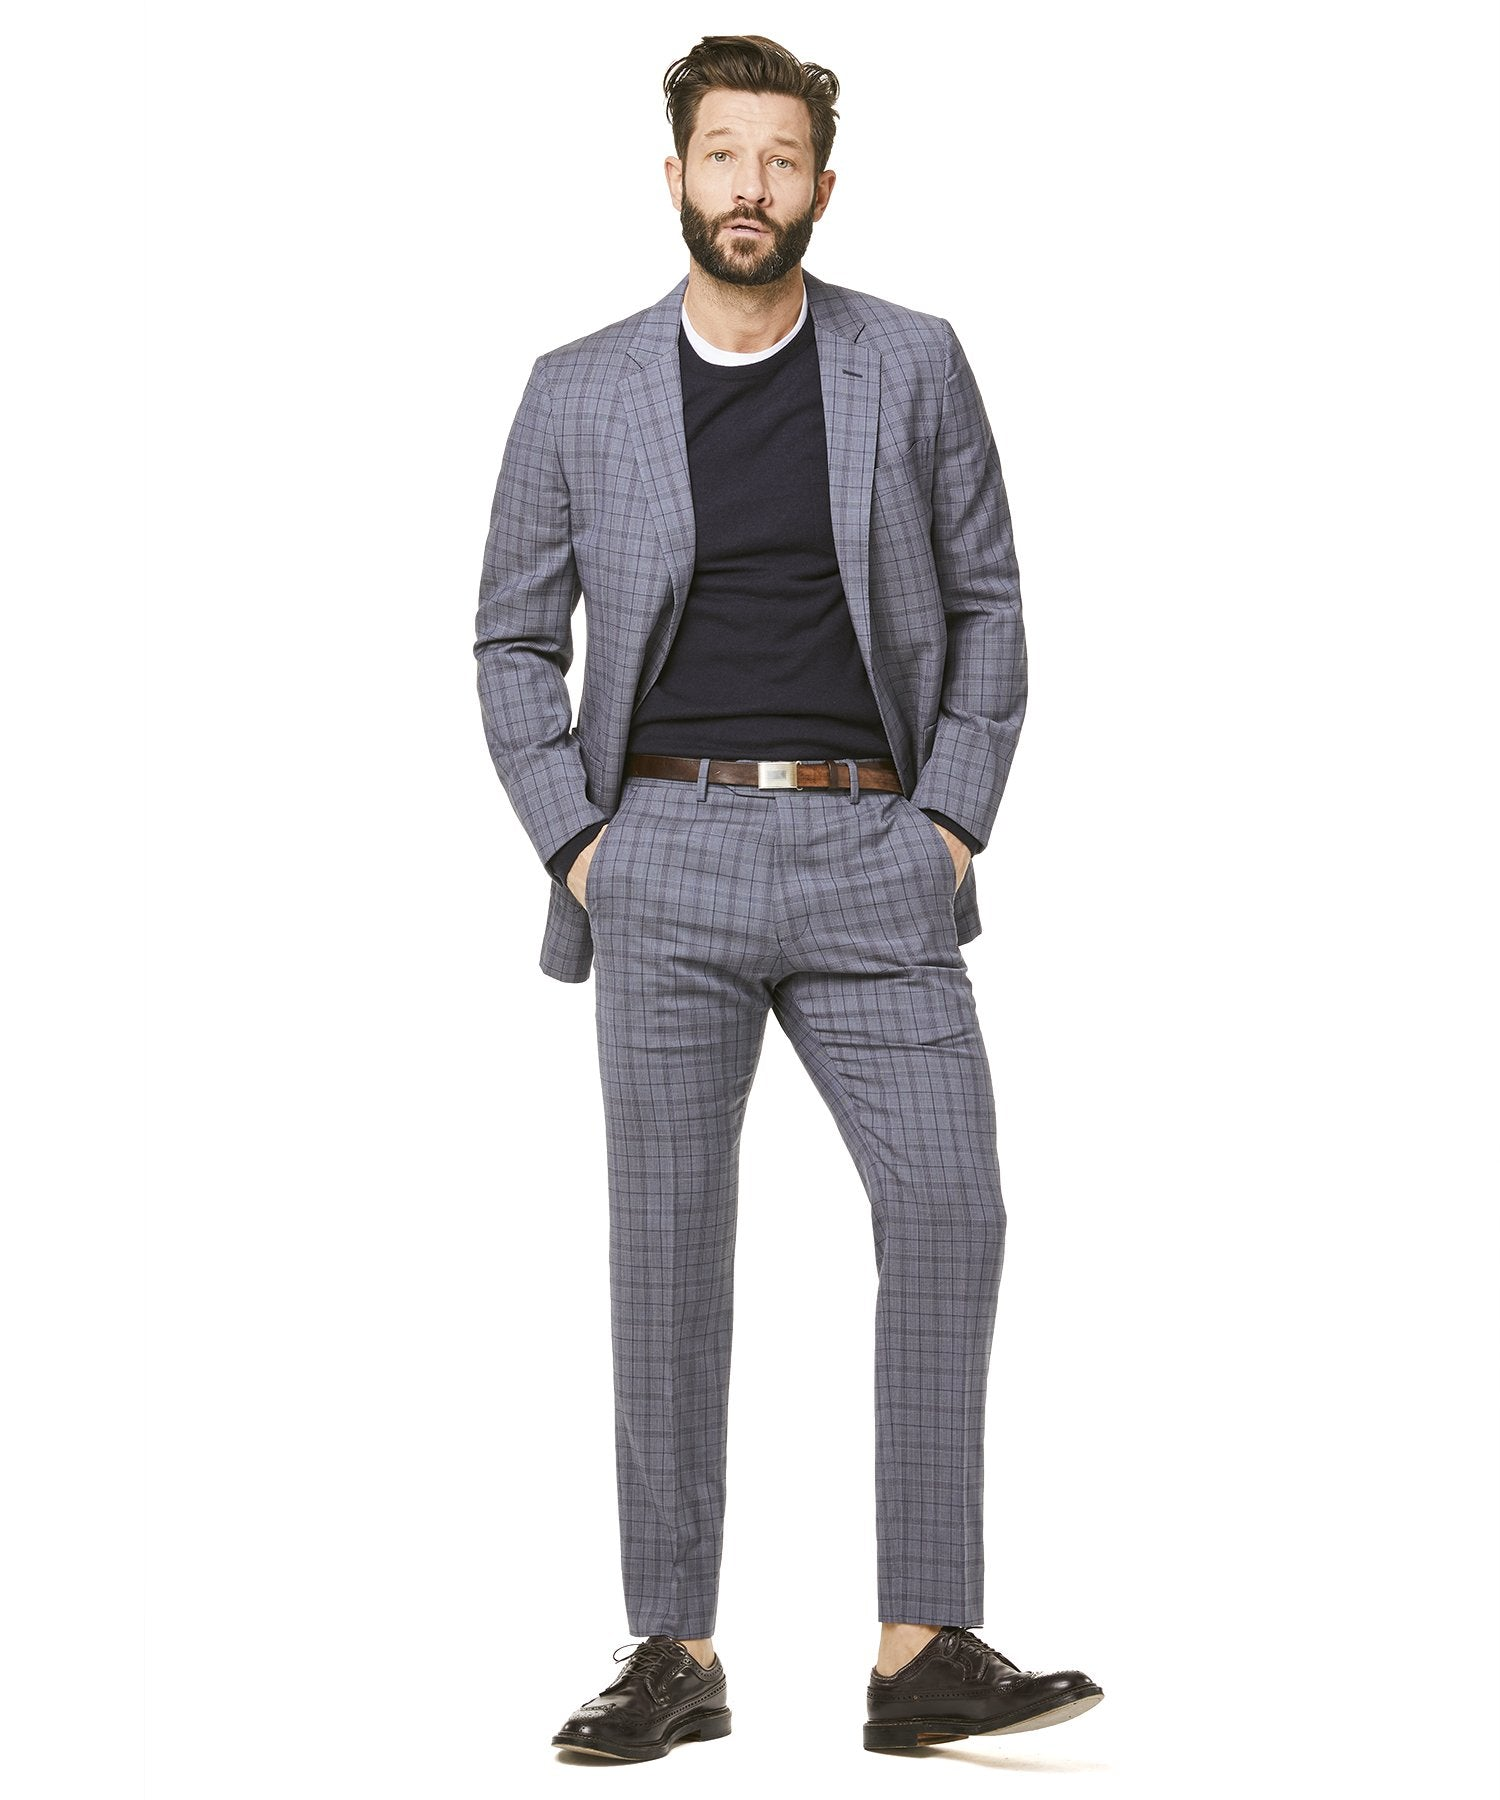 Todd Snyder Black Label Navy and Grey Tropical Wool Plaid Sutton Suit